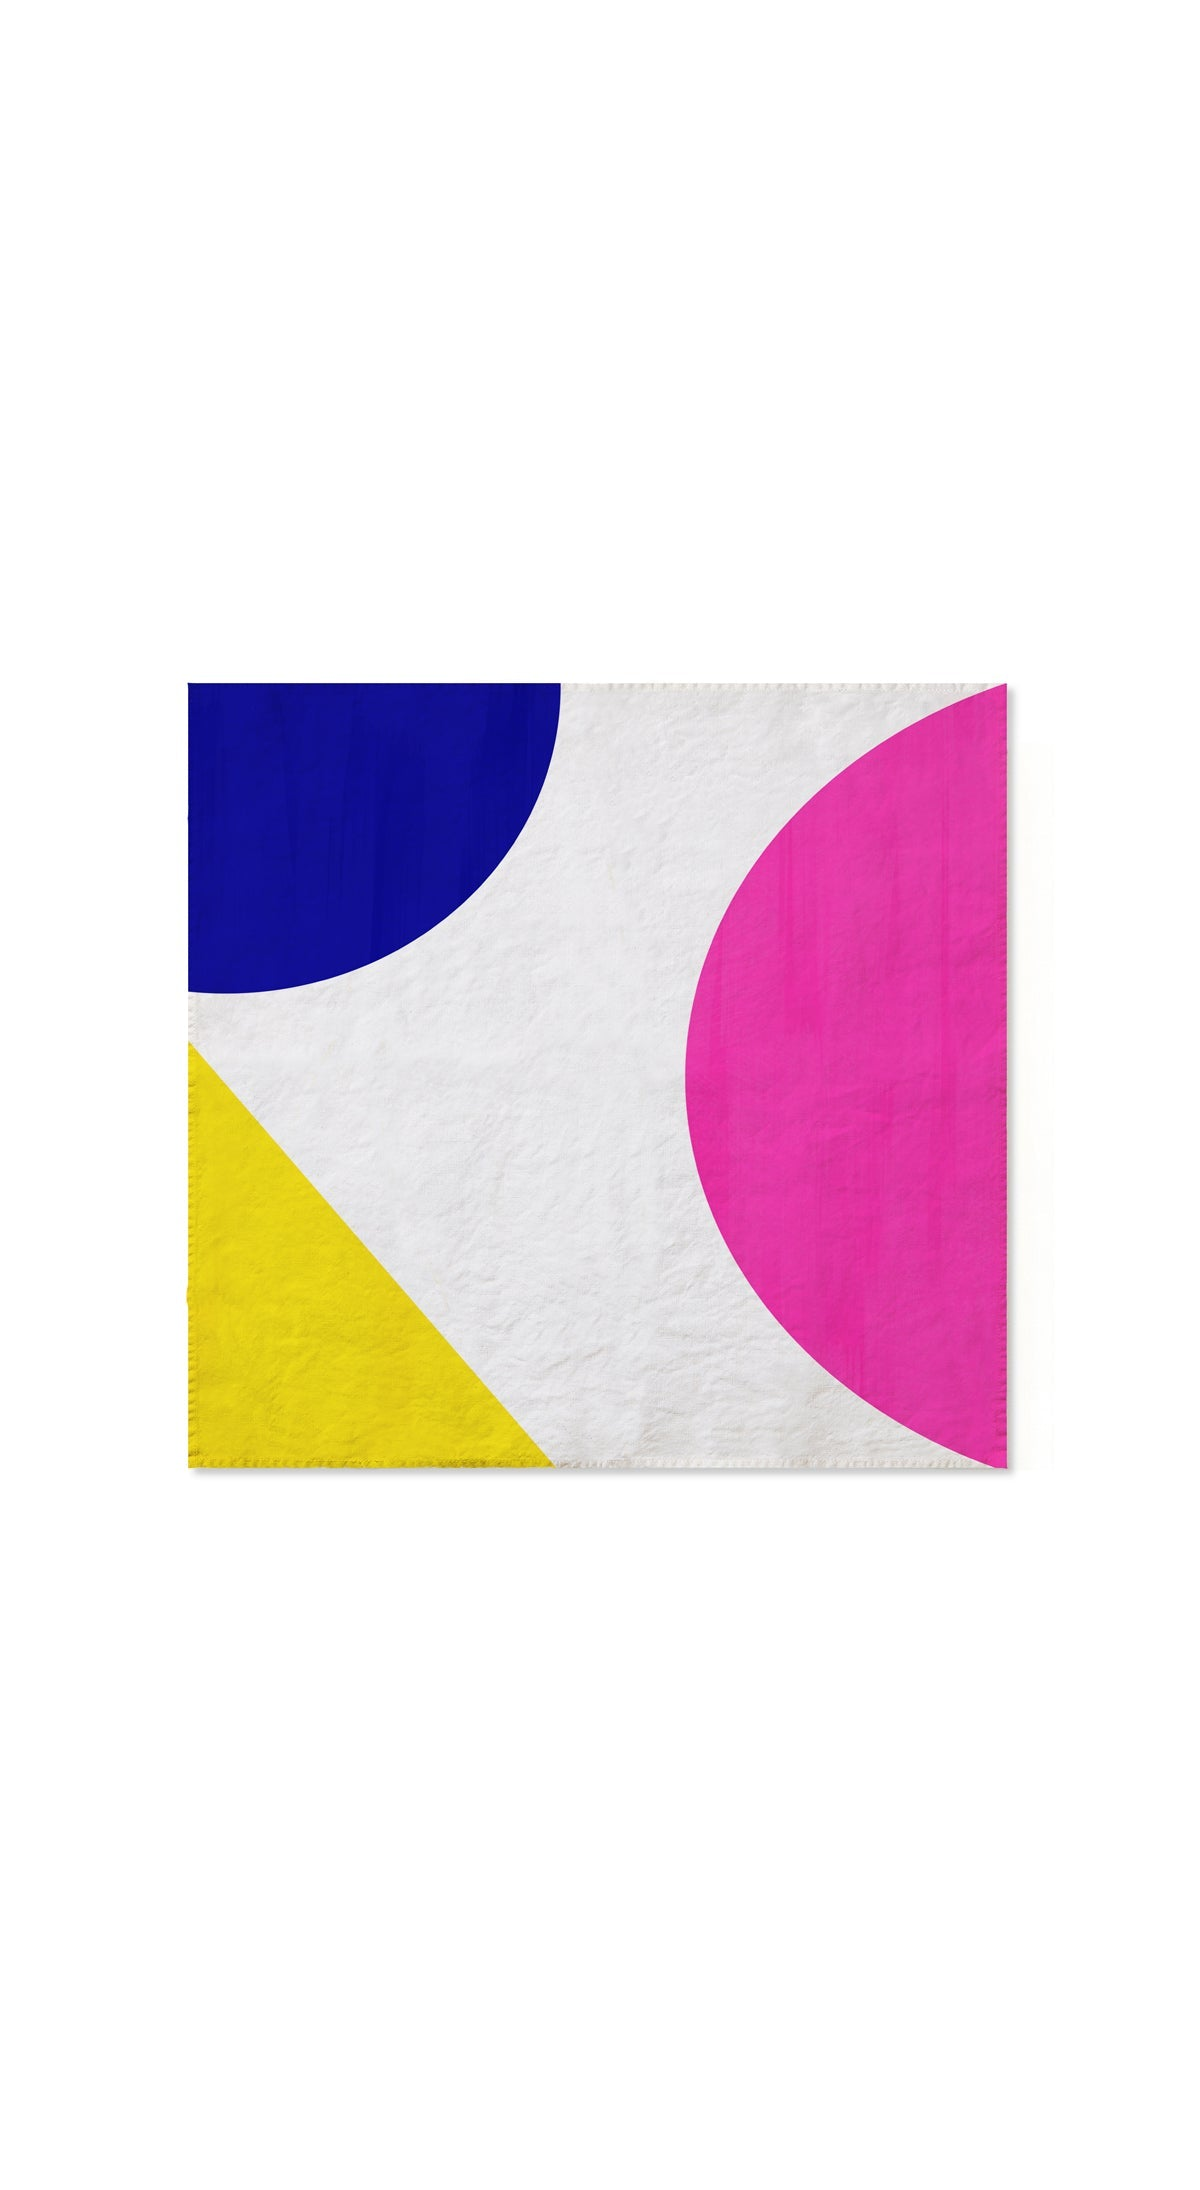 S&B x The River Cafe Linen Napkins in Blue, Pink & Yellow, Set of Two